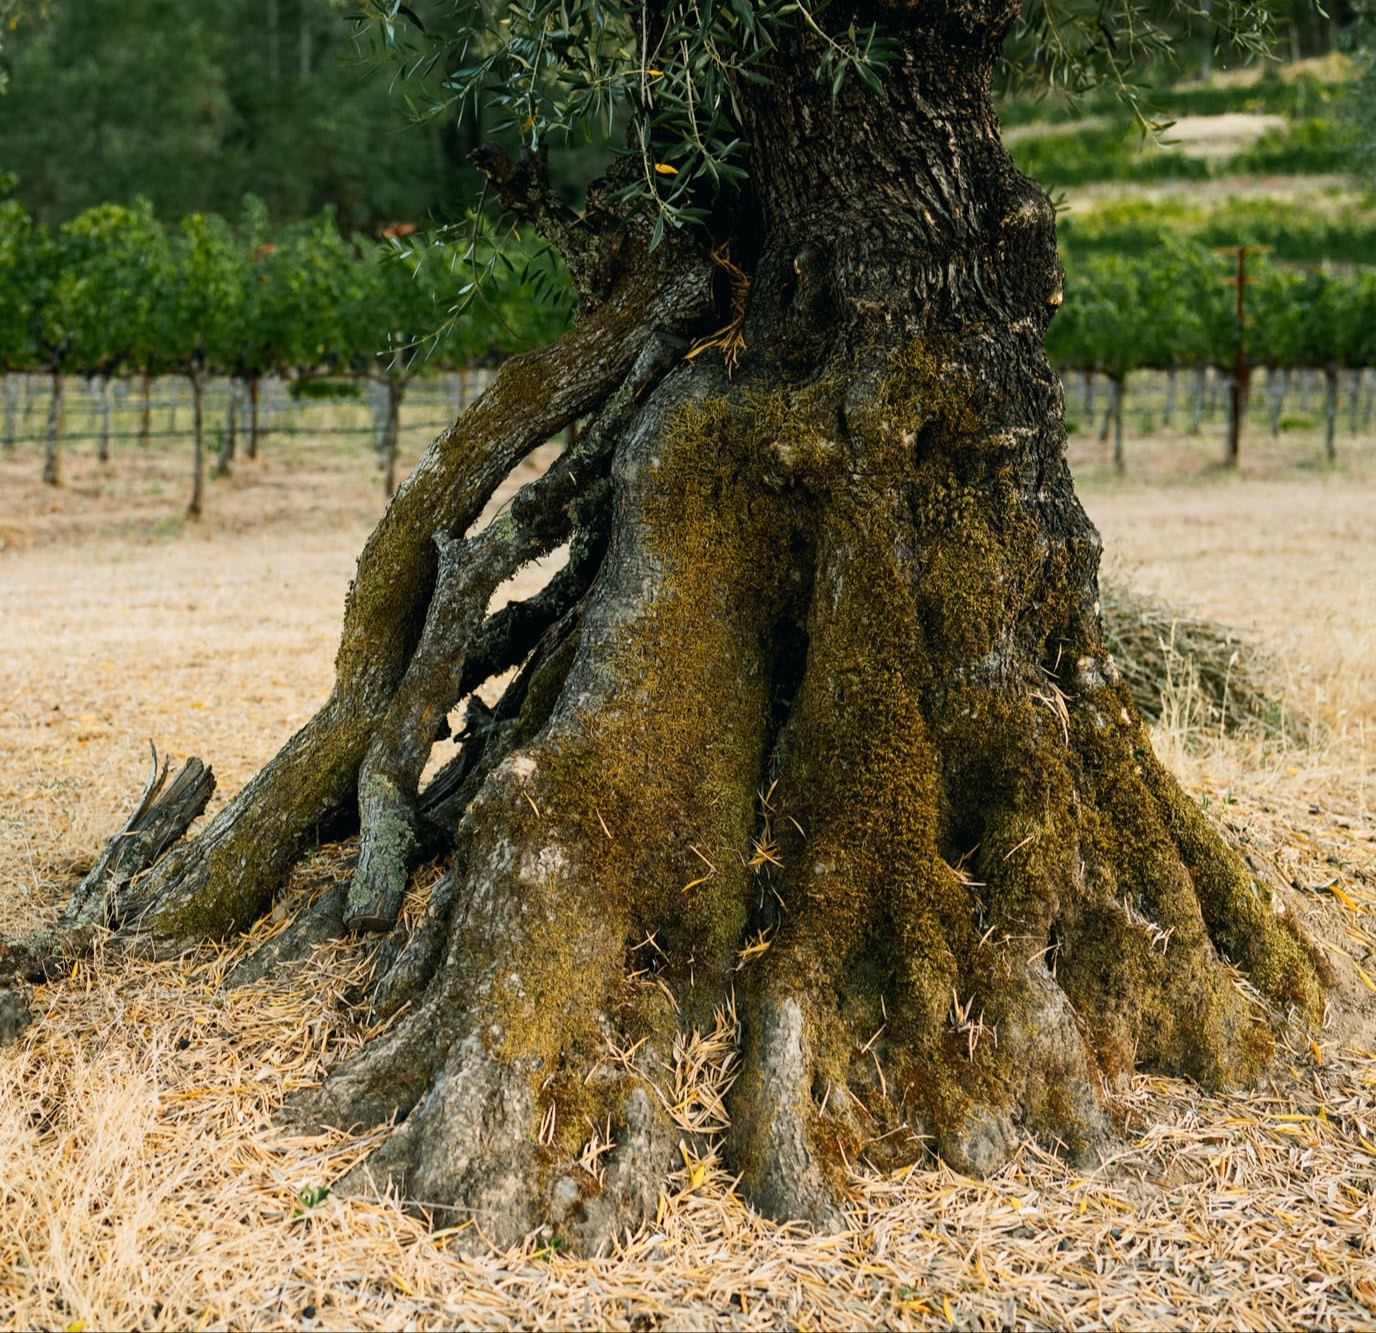 Close-up of Olive Tree Trunk in the Vineyard